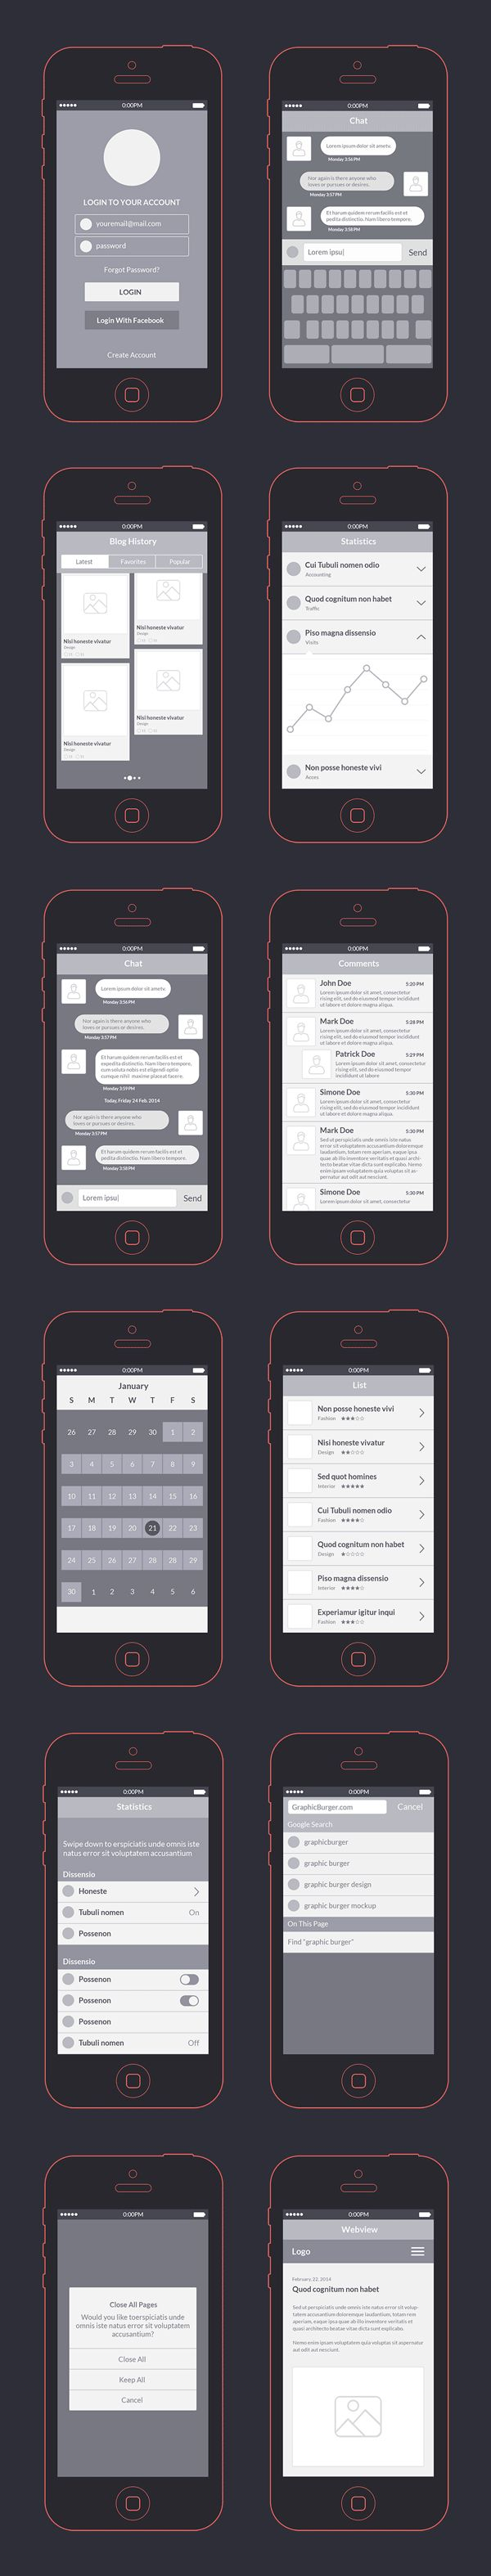 Free App Wireframes Kit PSD